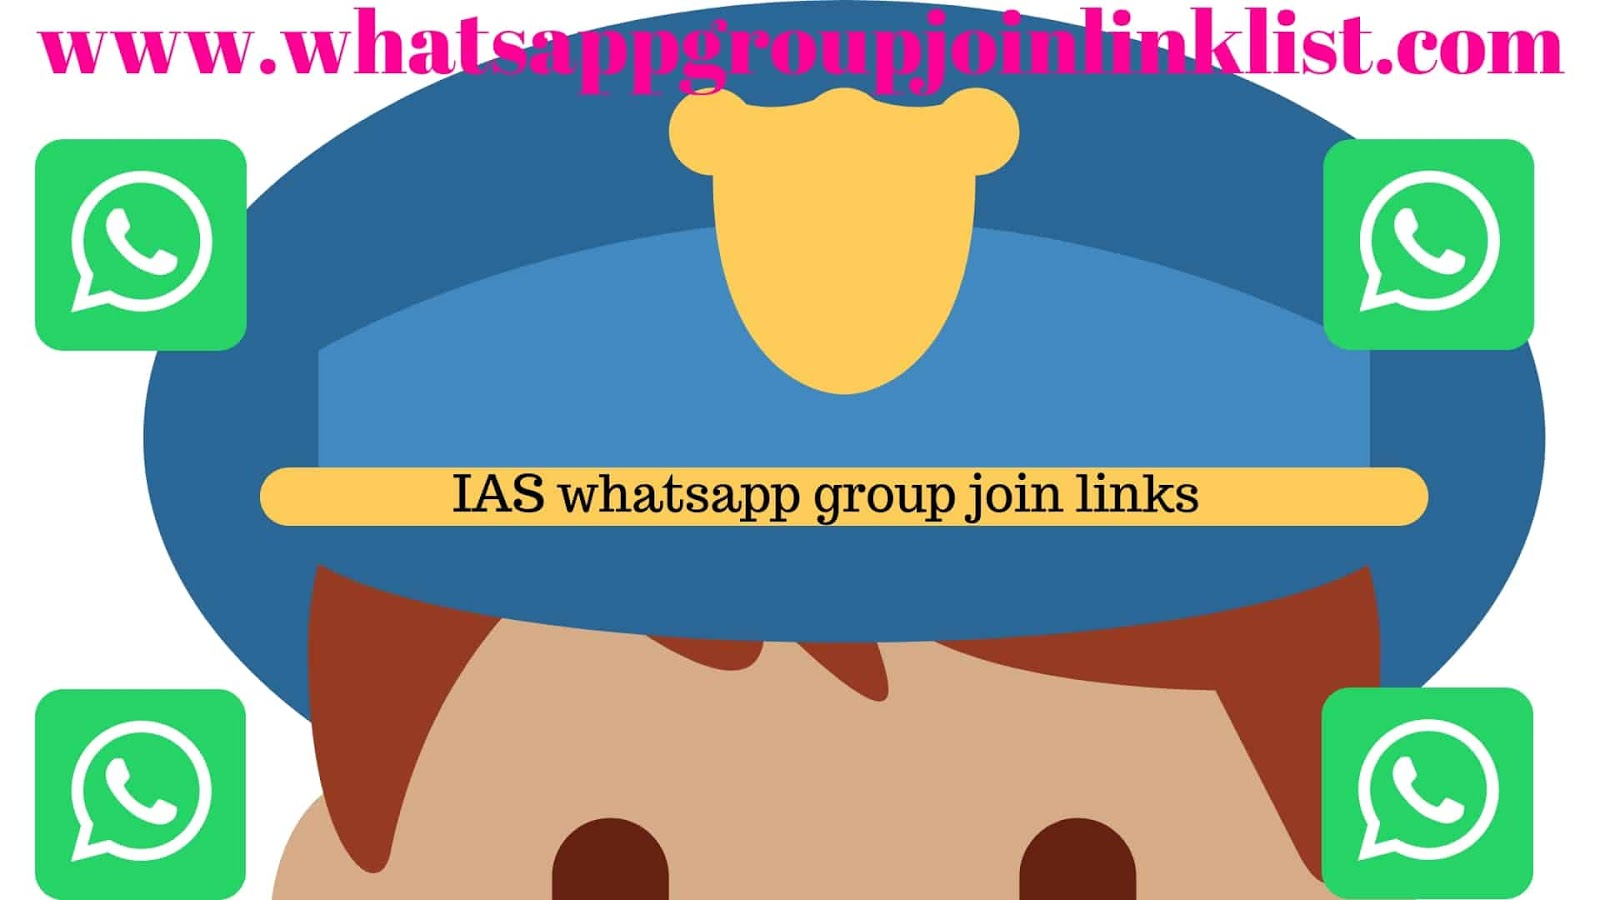 JOIN IAS WHATSAPP GROUP JOIN LINK LIST 2019